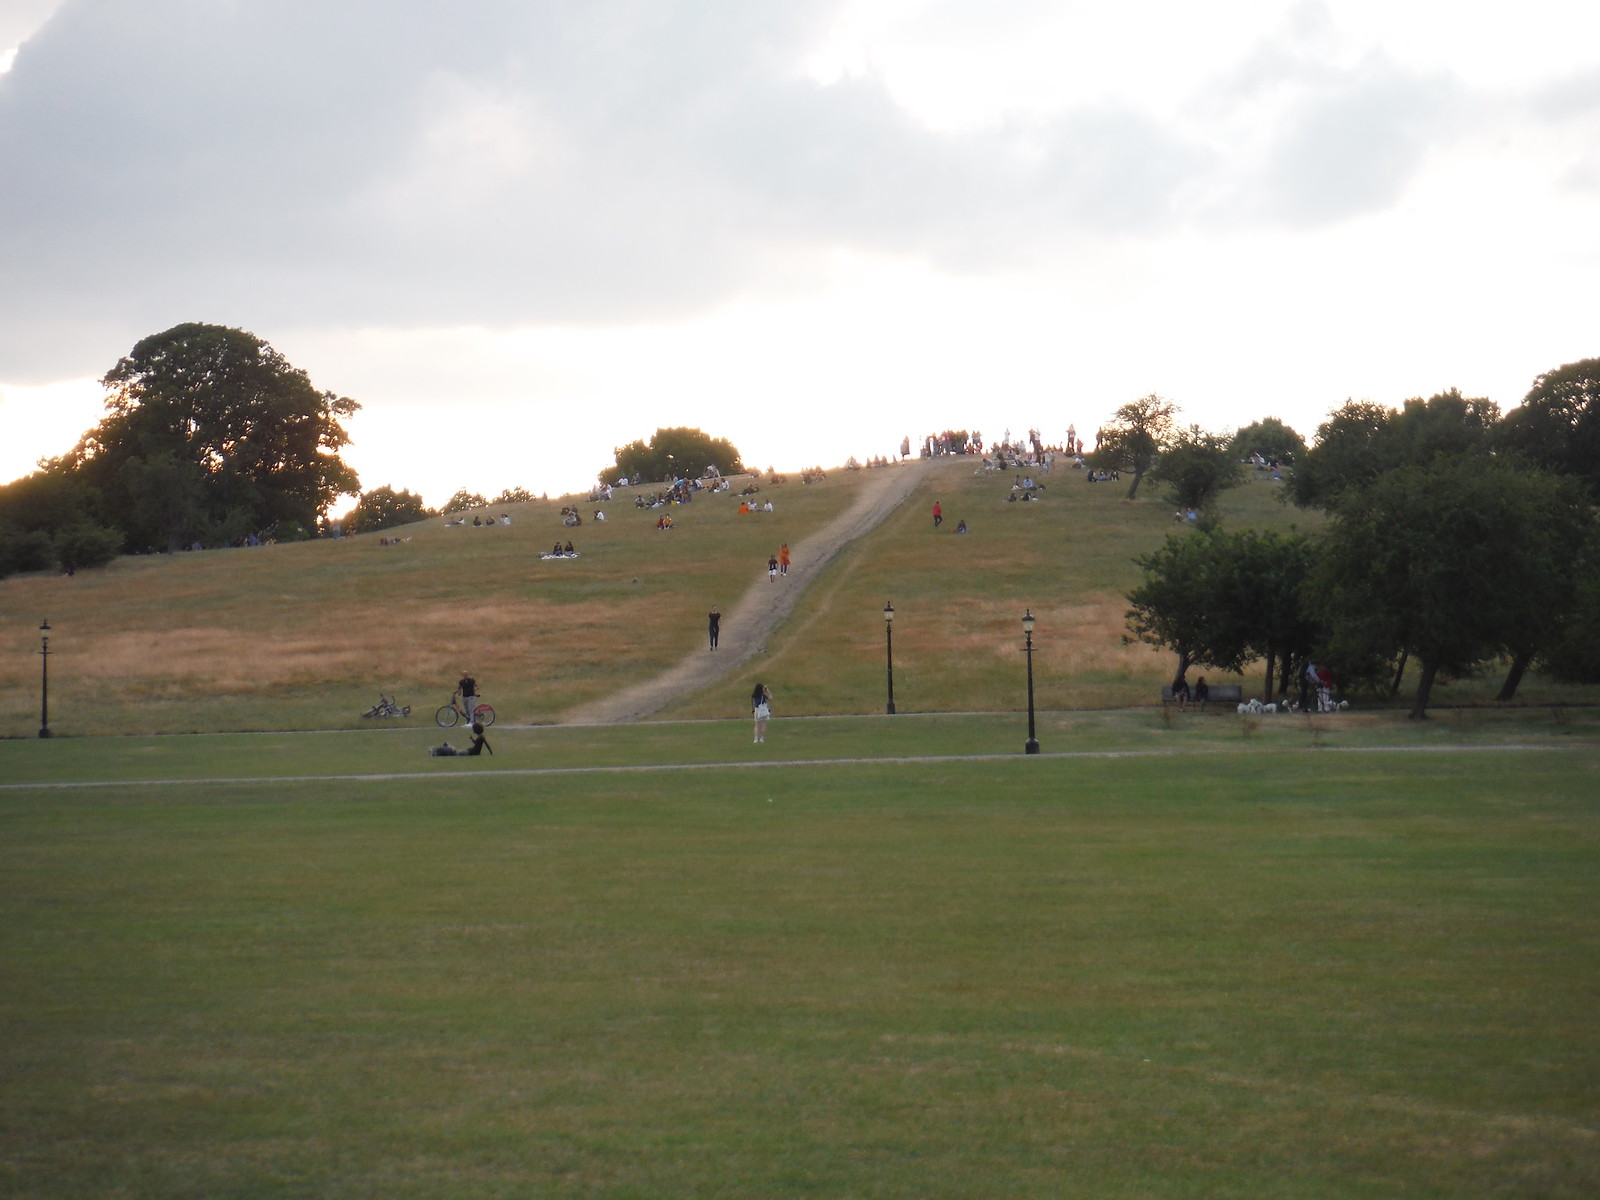 Primrose Hill SWC Short Walk 6 - Regent's Park and Primrose Hill